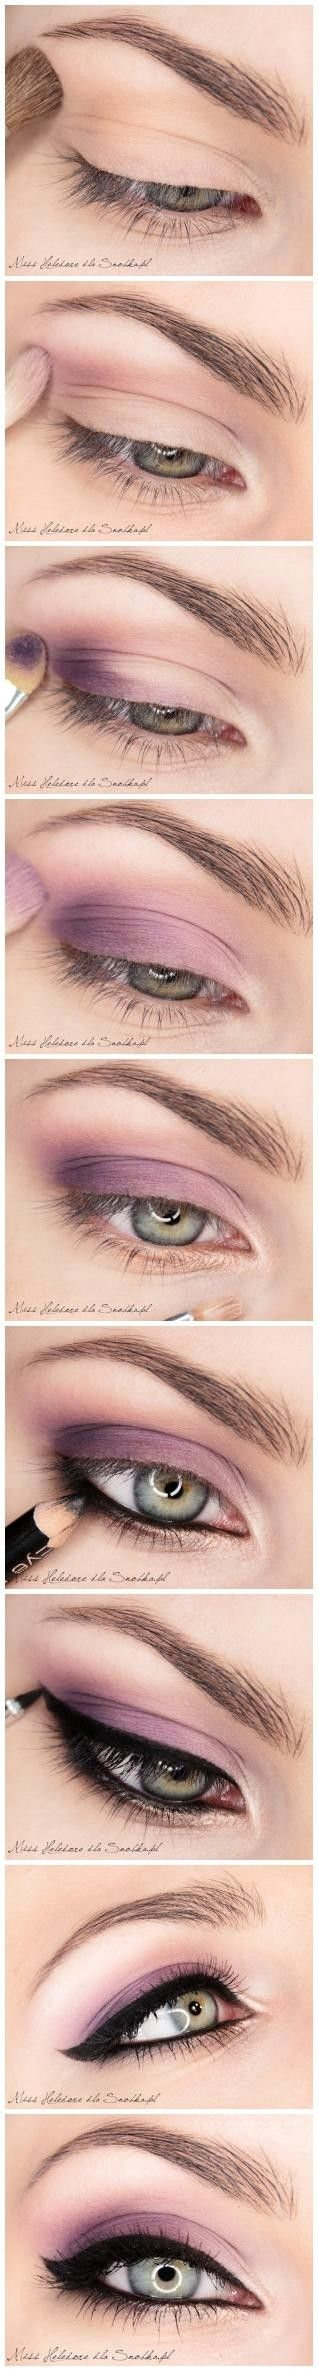 Simple & subtle purple smokey effect